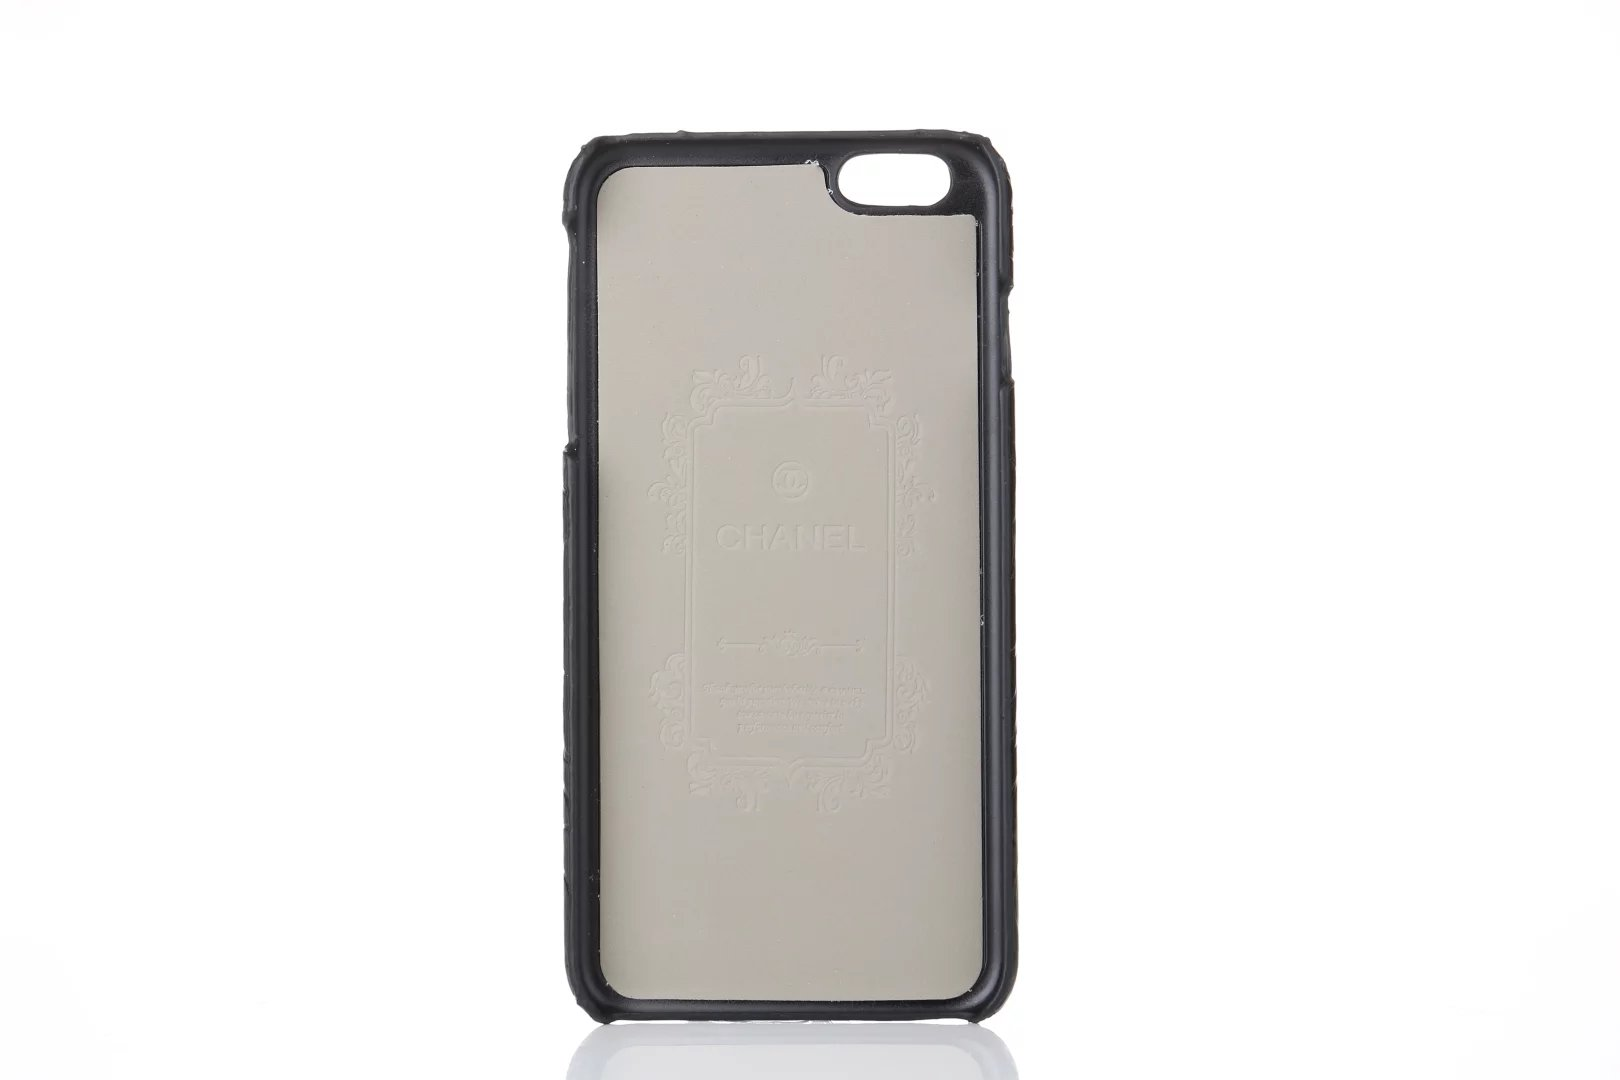 iphone 6s design cases 6s iphone cases fashion iphone6s case cheap cell phone covers iphone 6s iphone i 6s online phone case store iphone 6s cases leather cell phone cases online